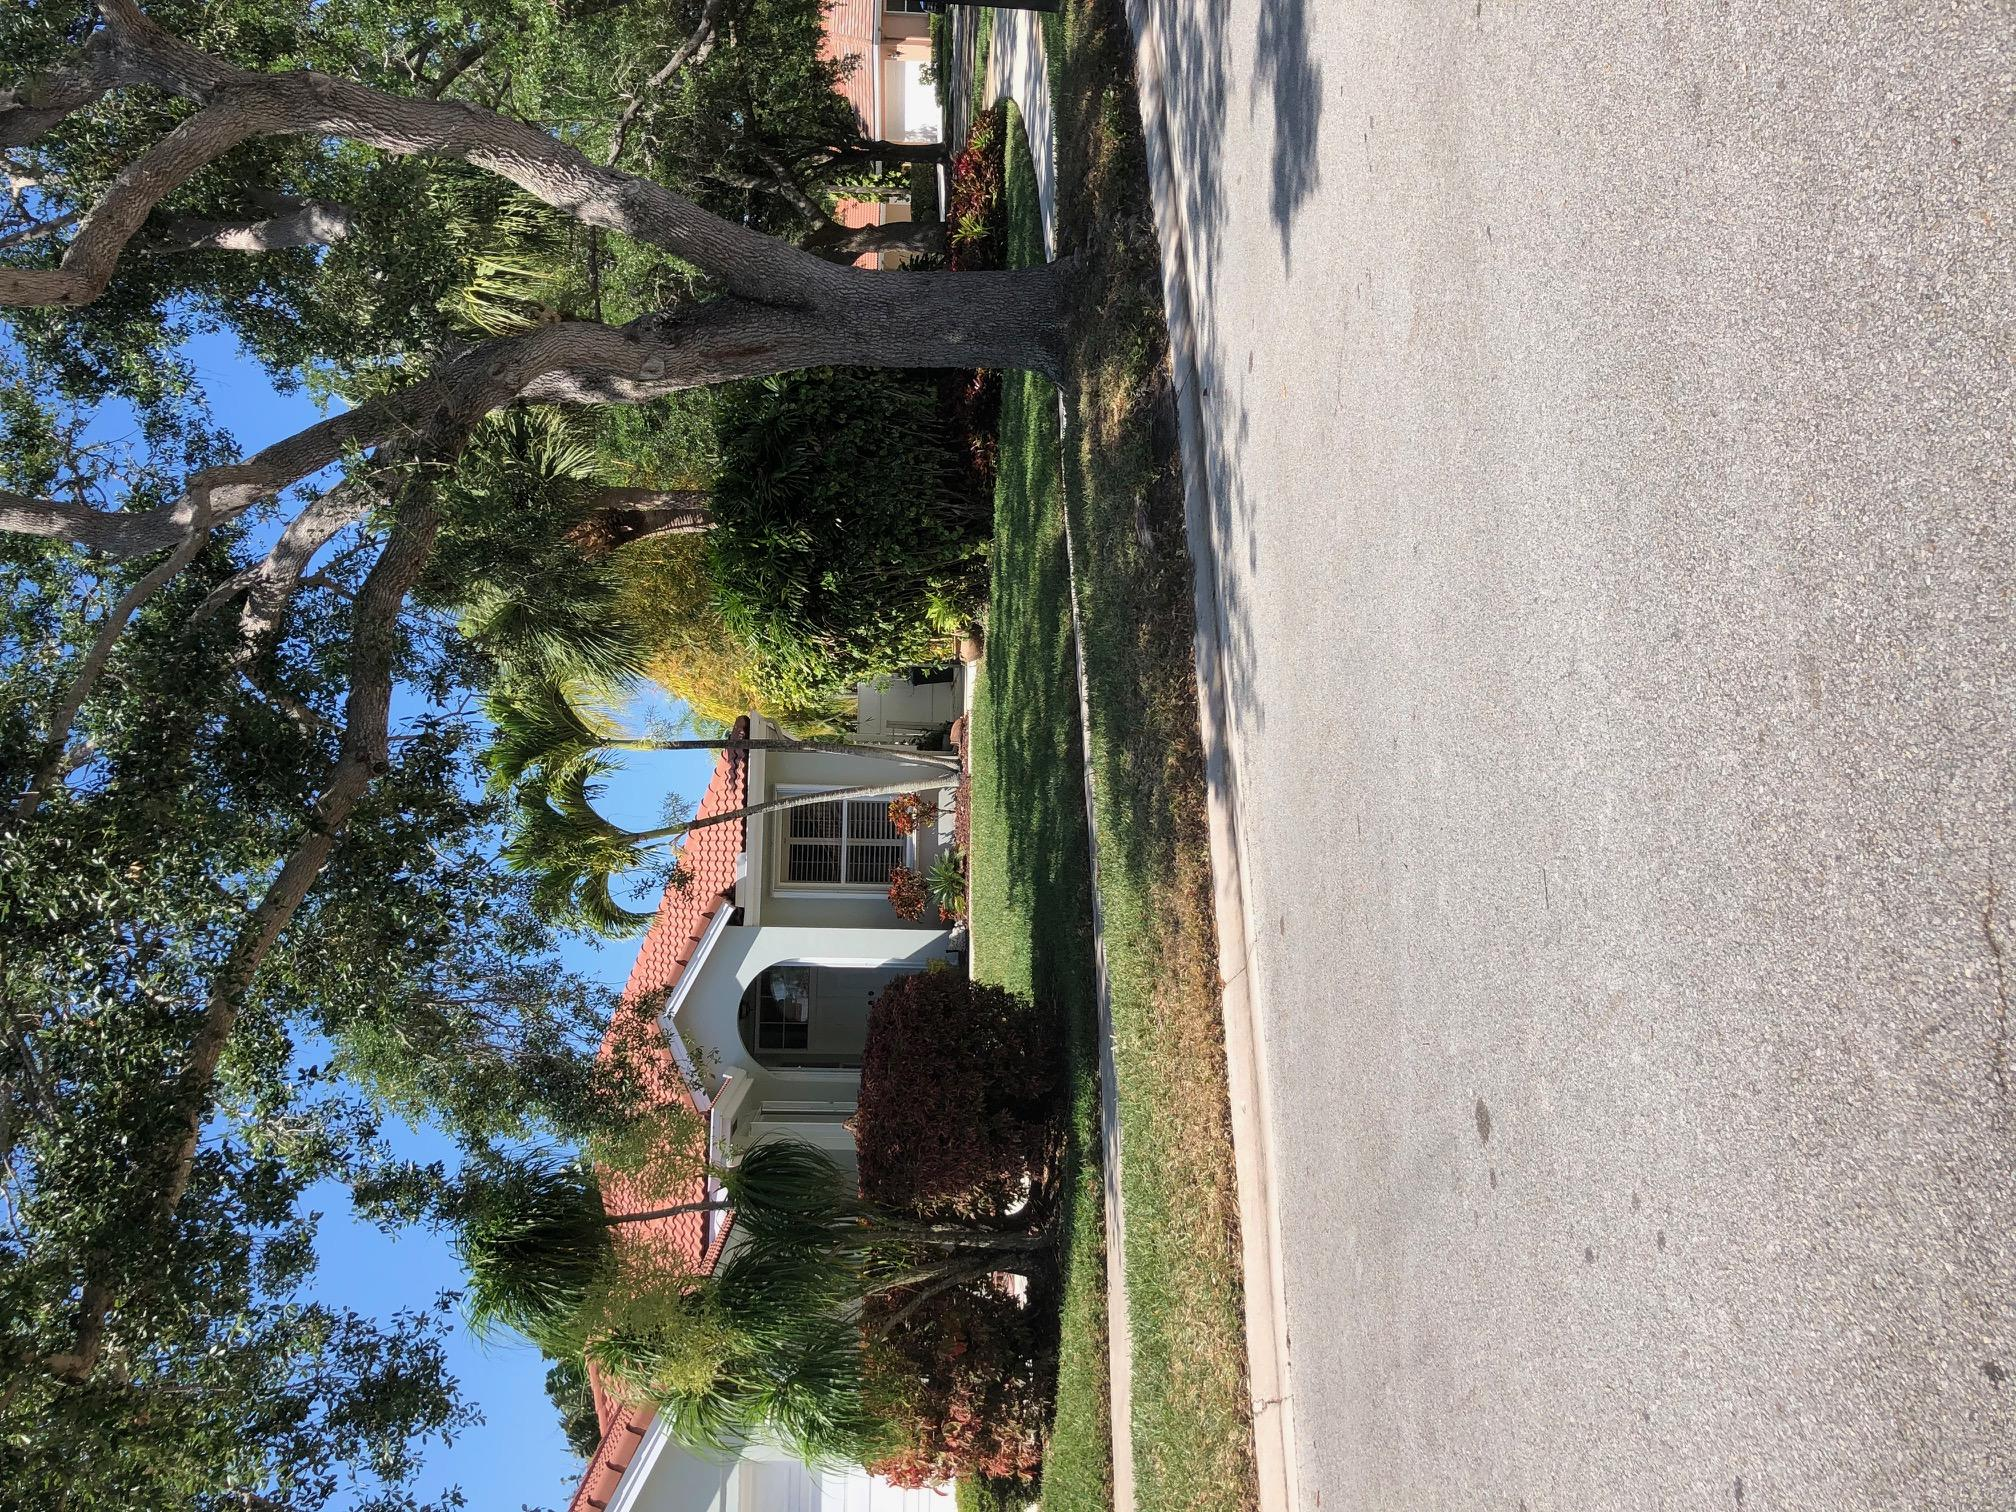 VERY NICE UPDATED HOME IN DESIREABLE JUPITER COMMUNITY HEATED PRIVATE POOL AND SCREENED LANAI! NEW A/C